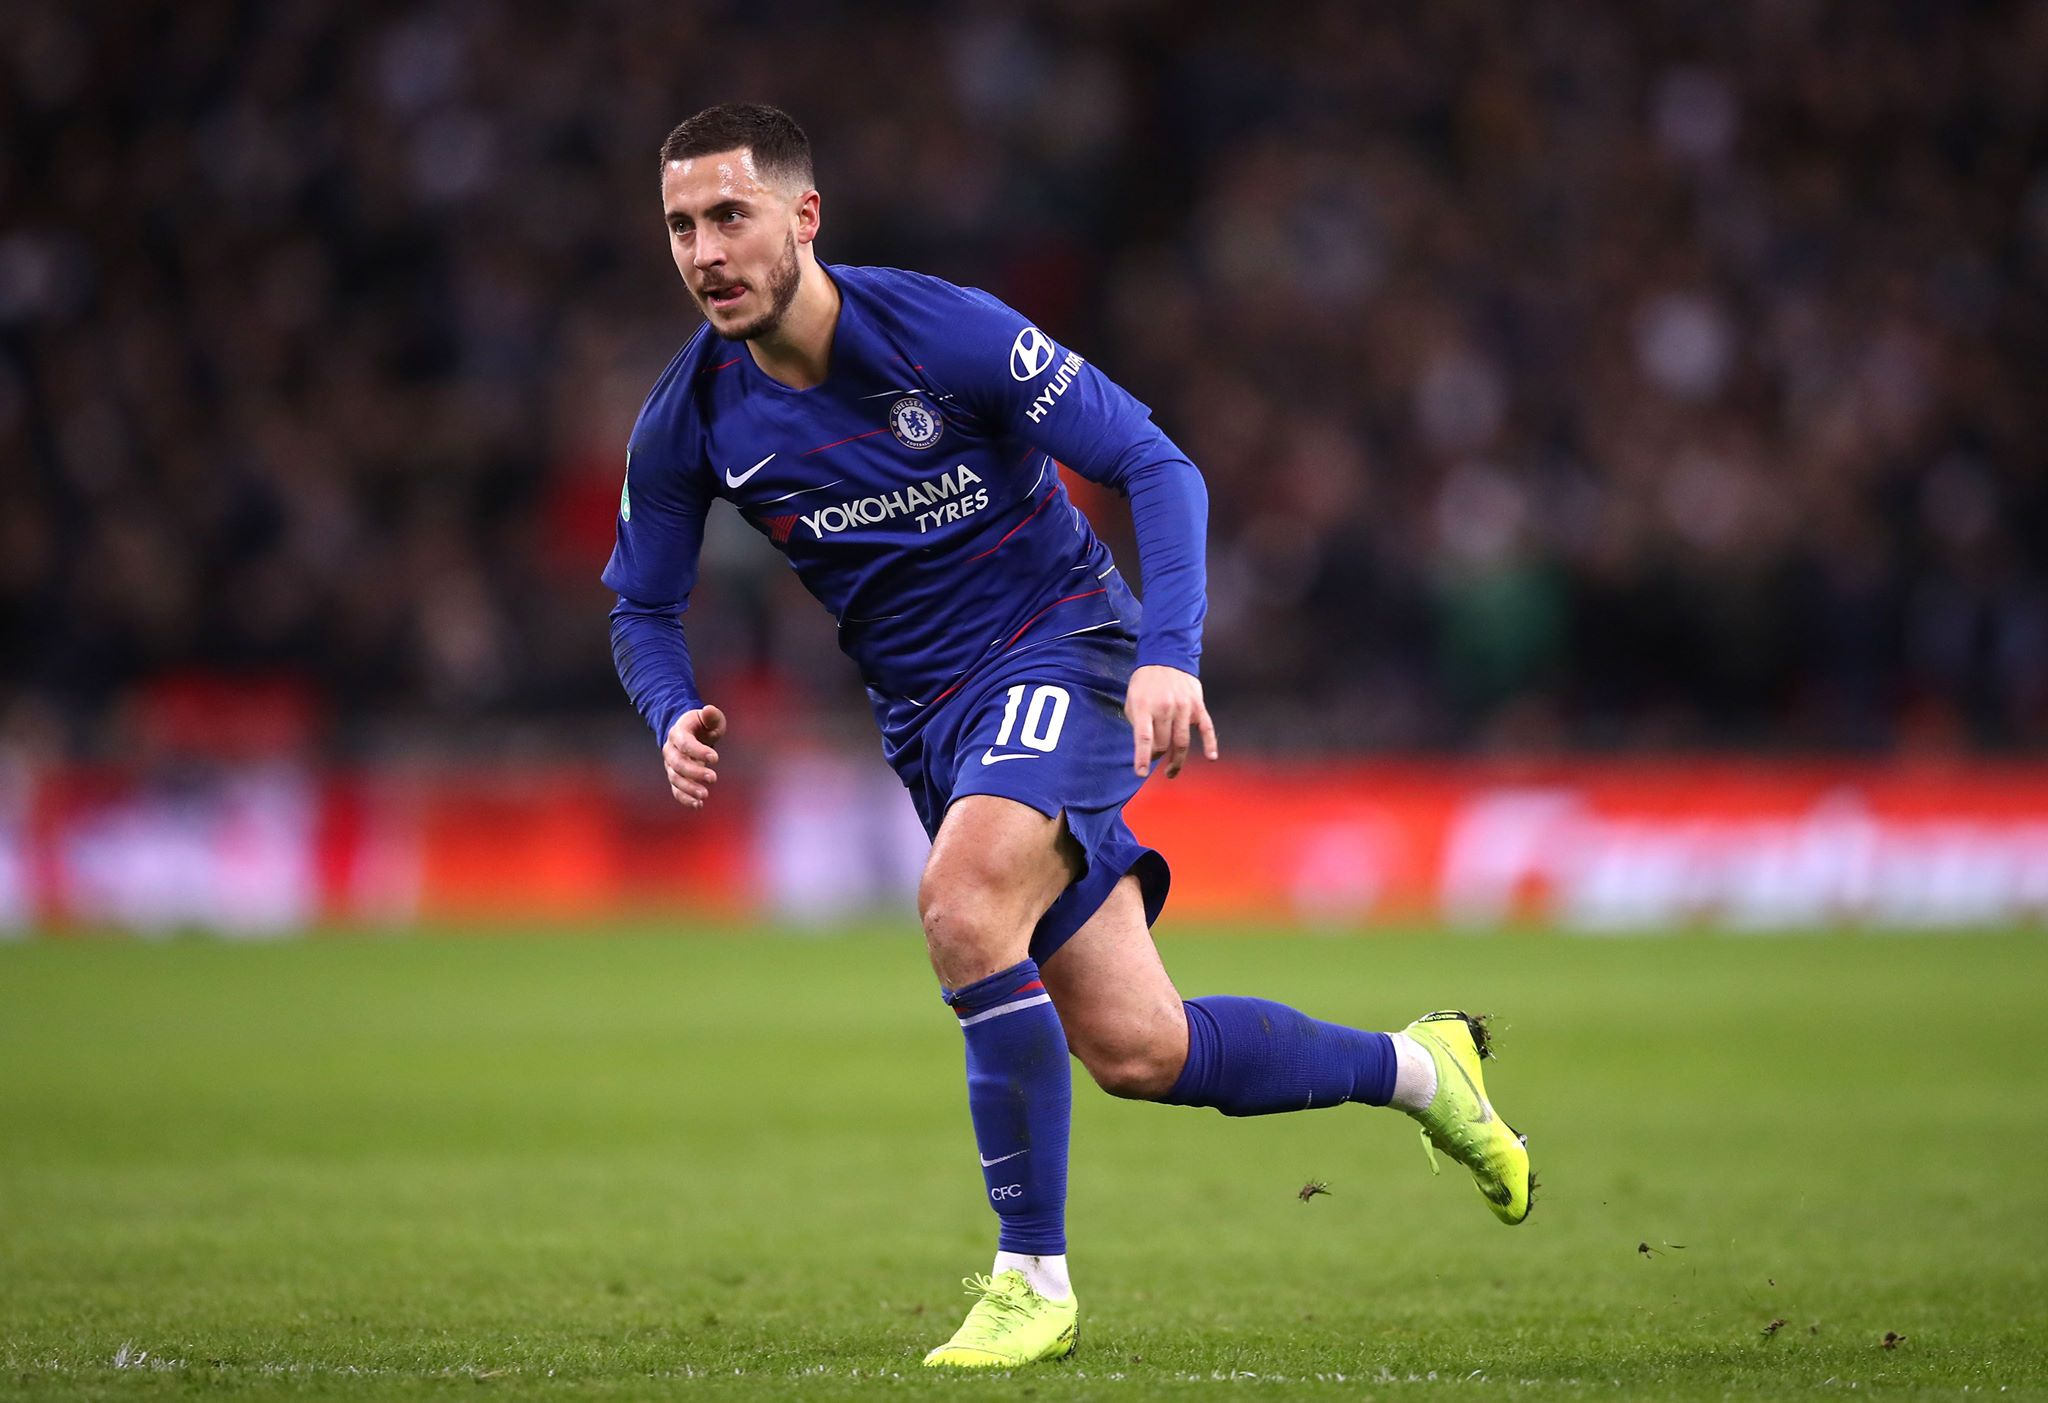 Eden Hazard is 'too good' to stay, says Jermaine Jenas